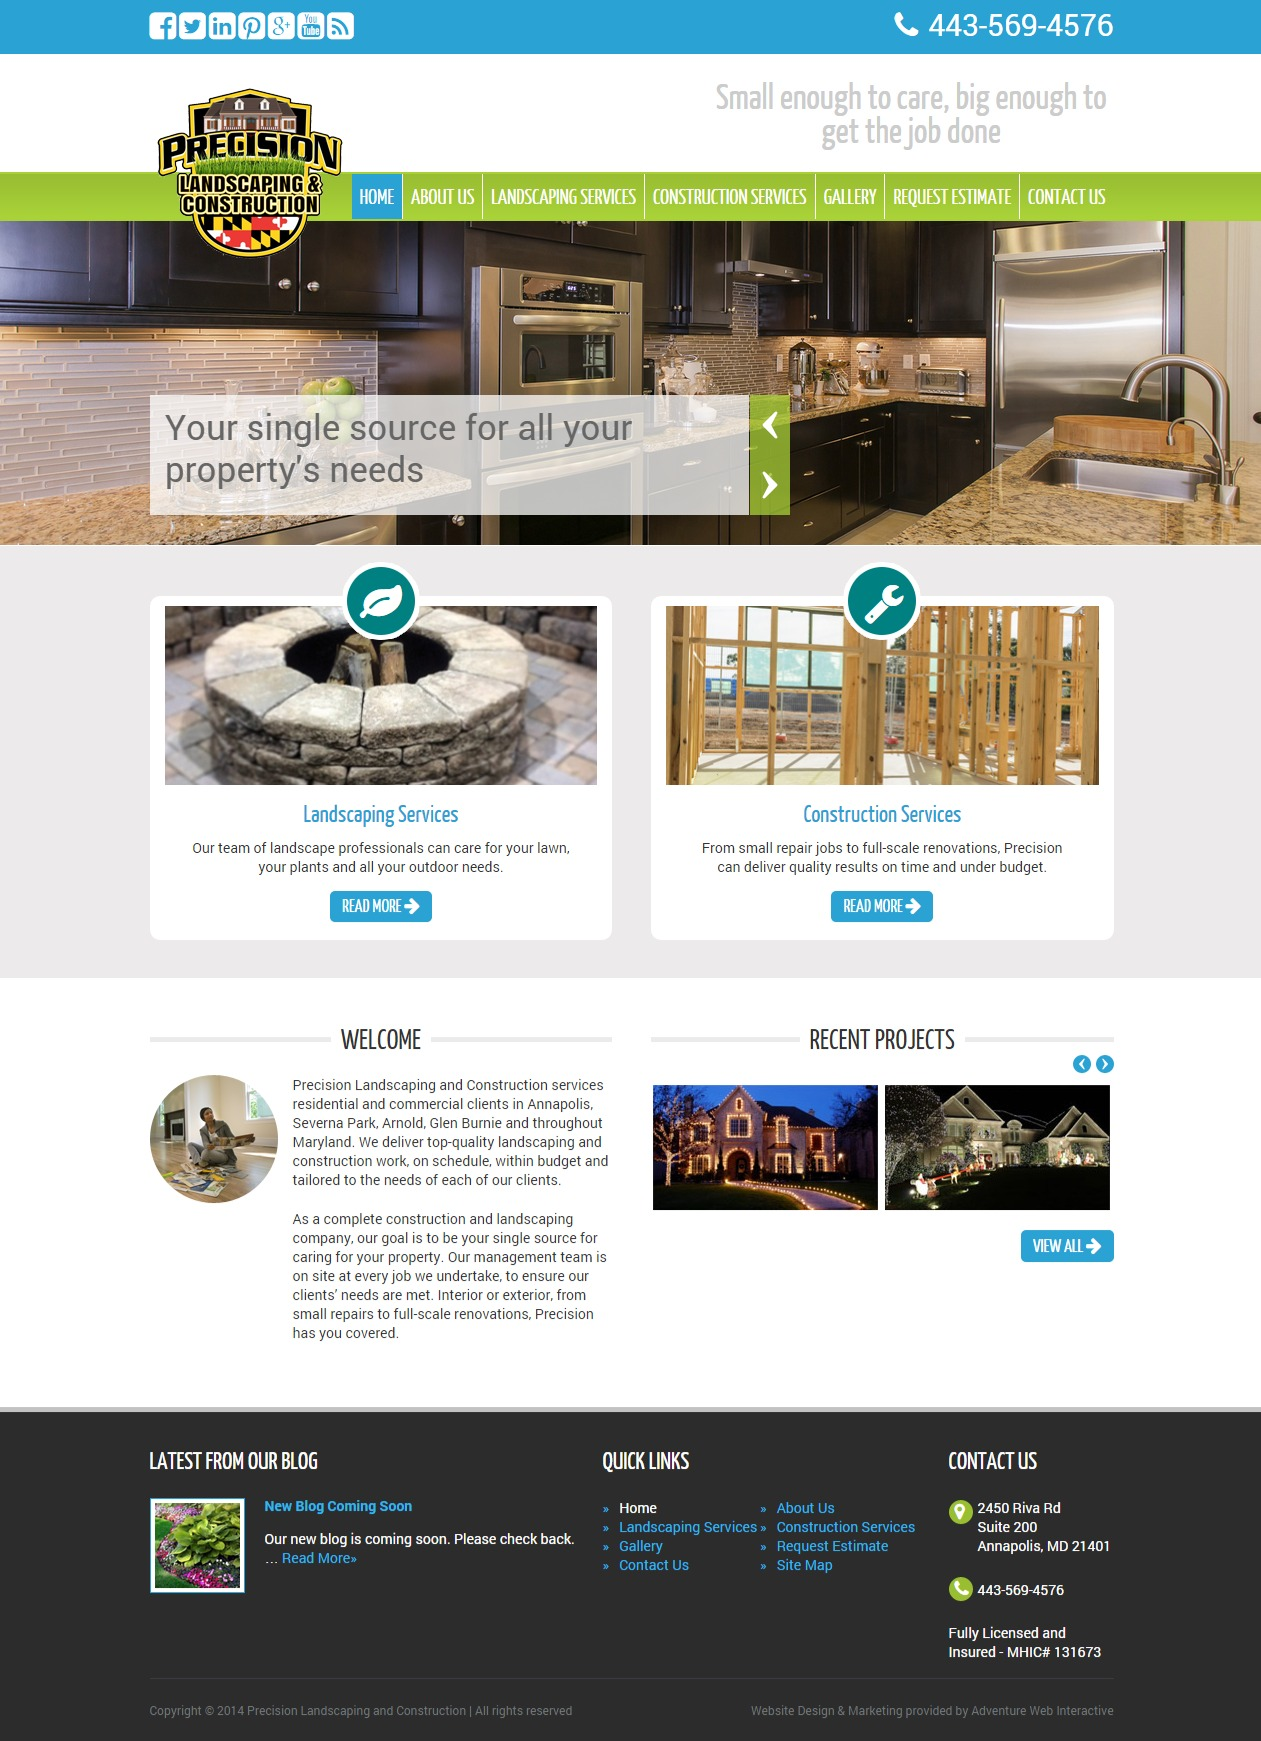 Adventure Web Launches New Site Precision Landscaping